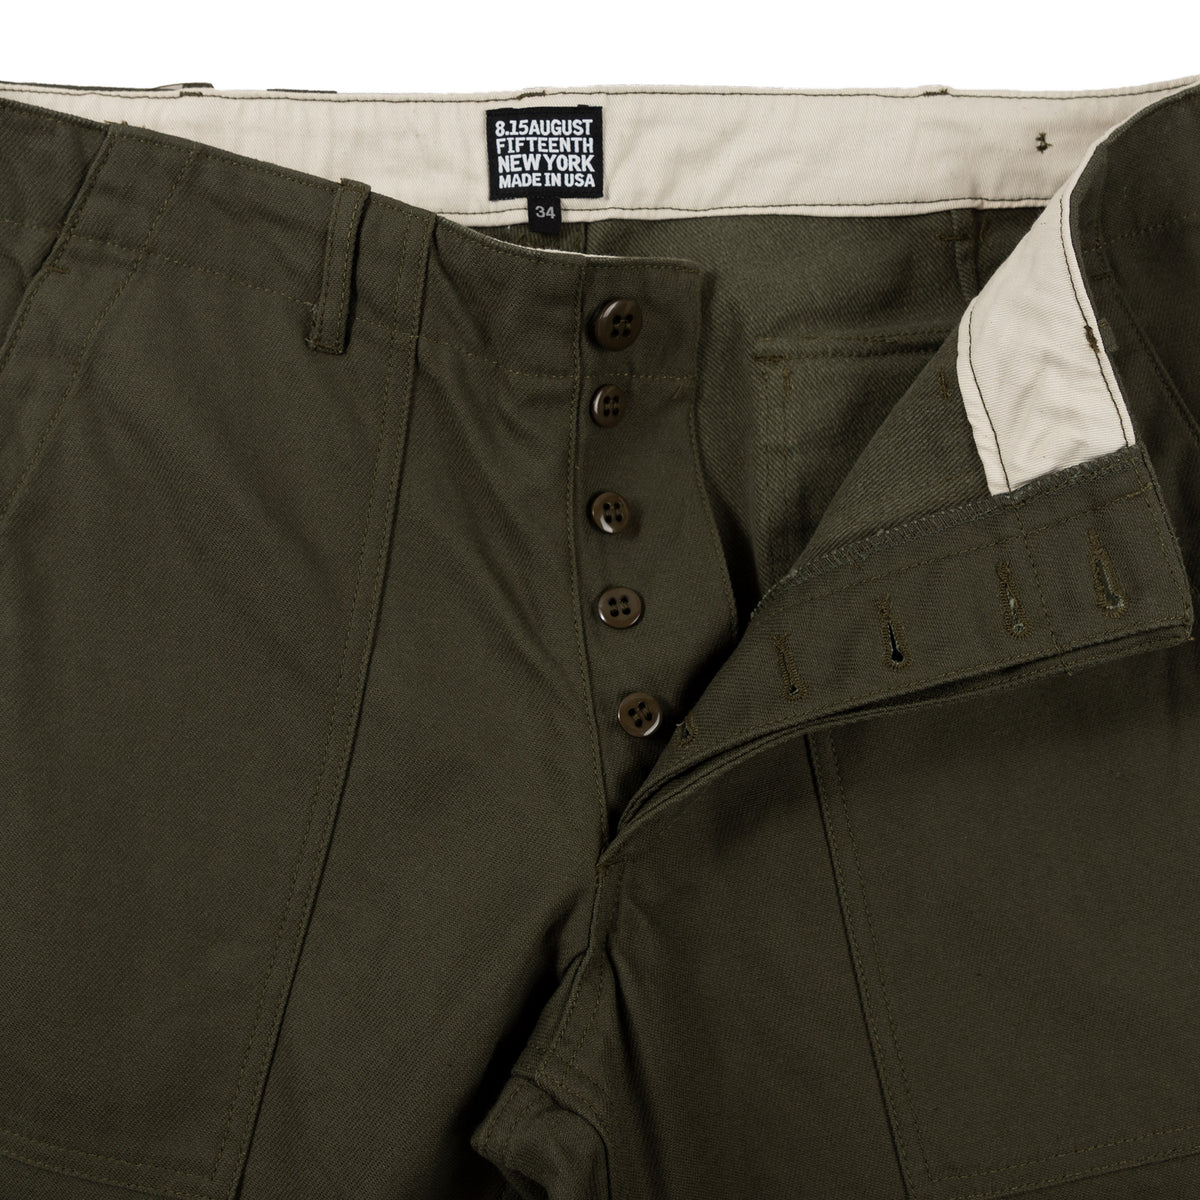 August Fifteenth Fatigue Trousers Back Twill Olive Detail